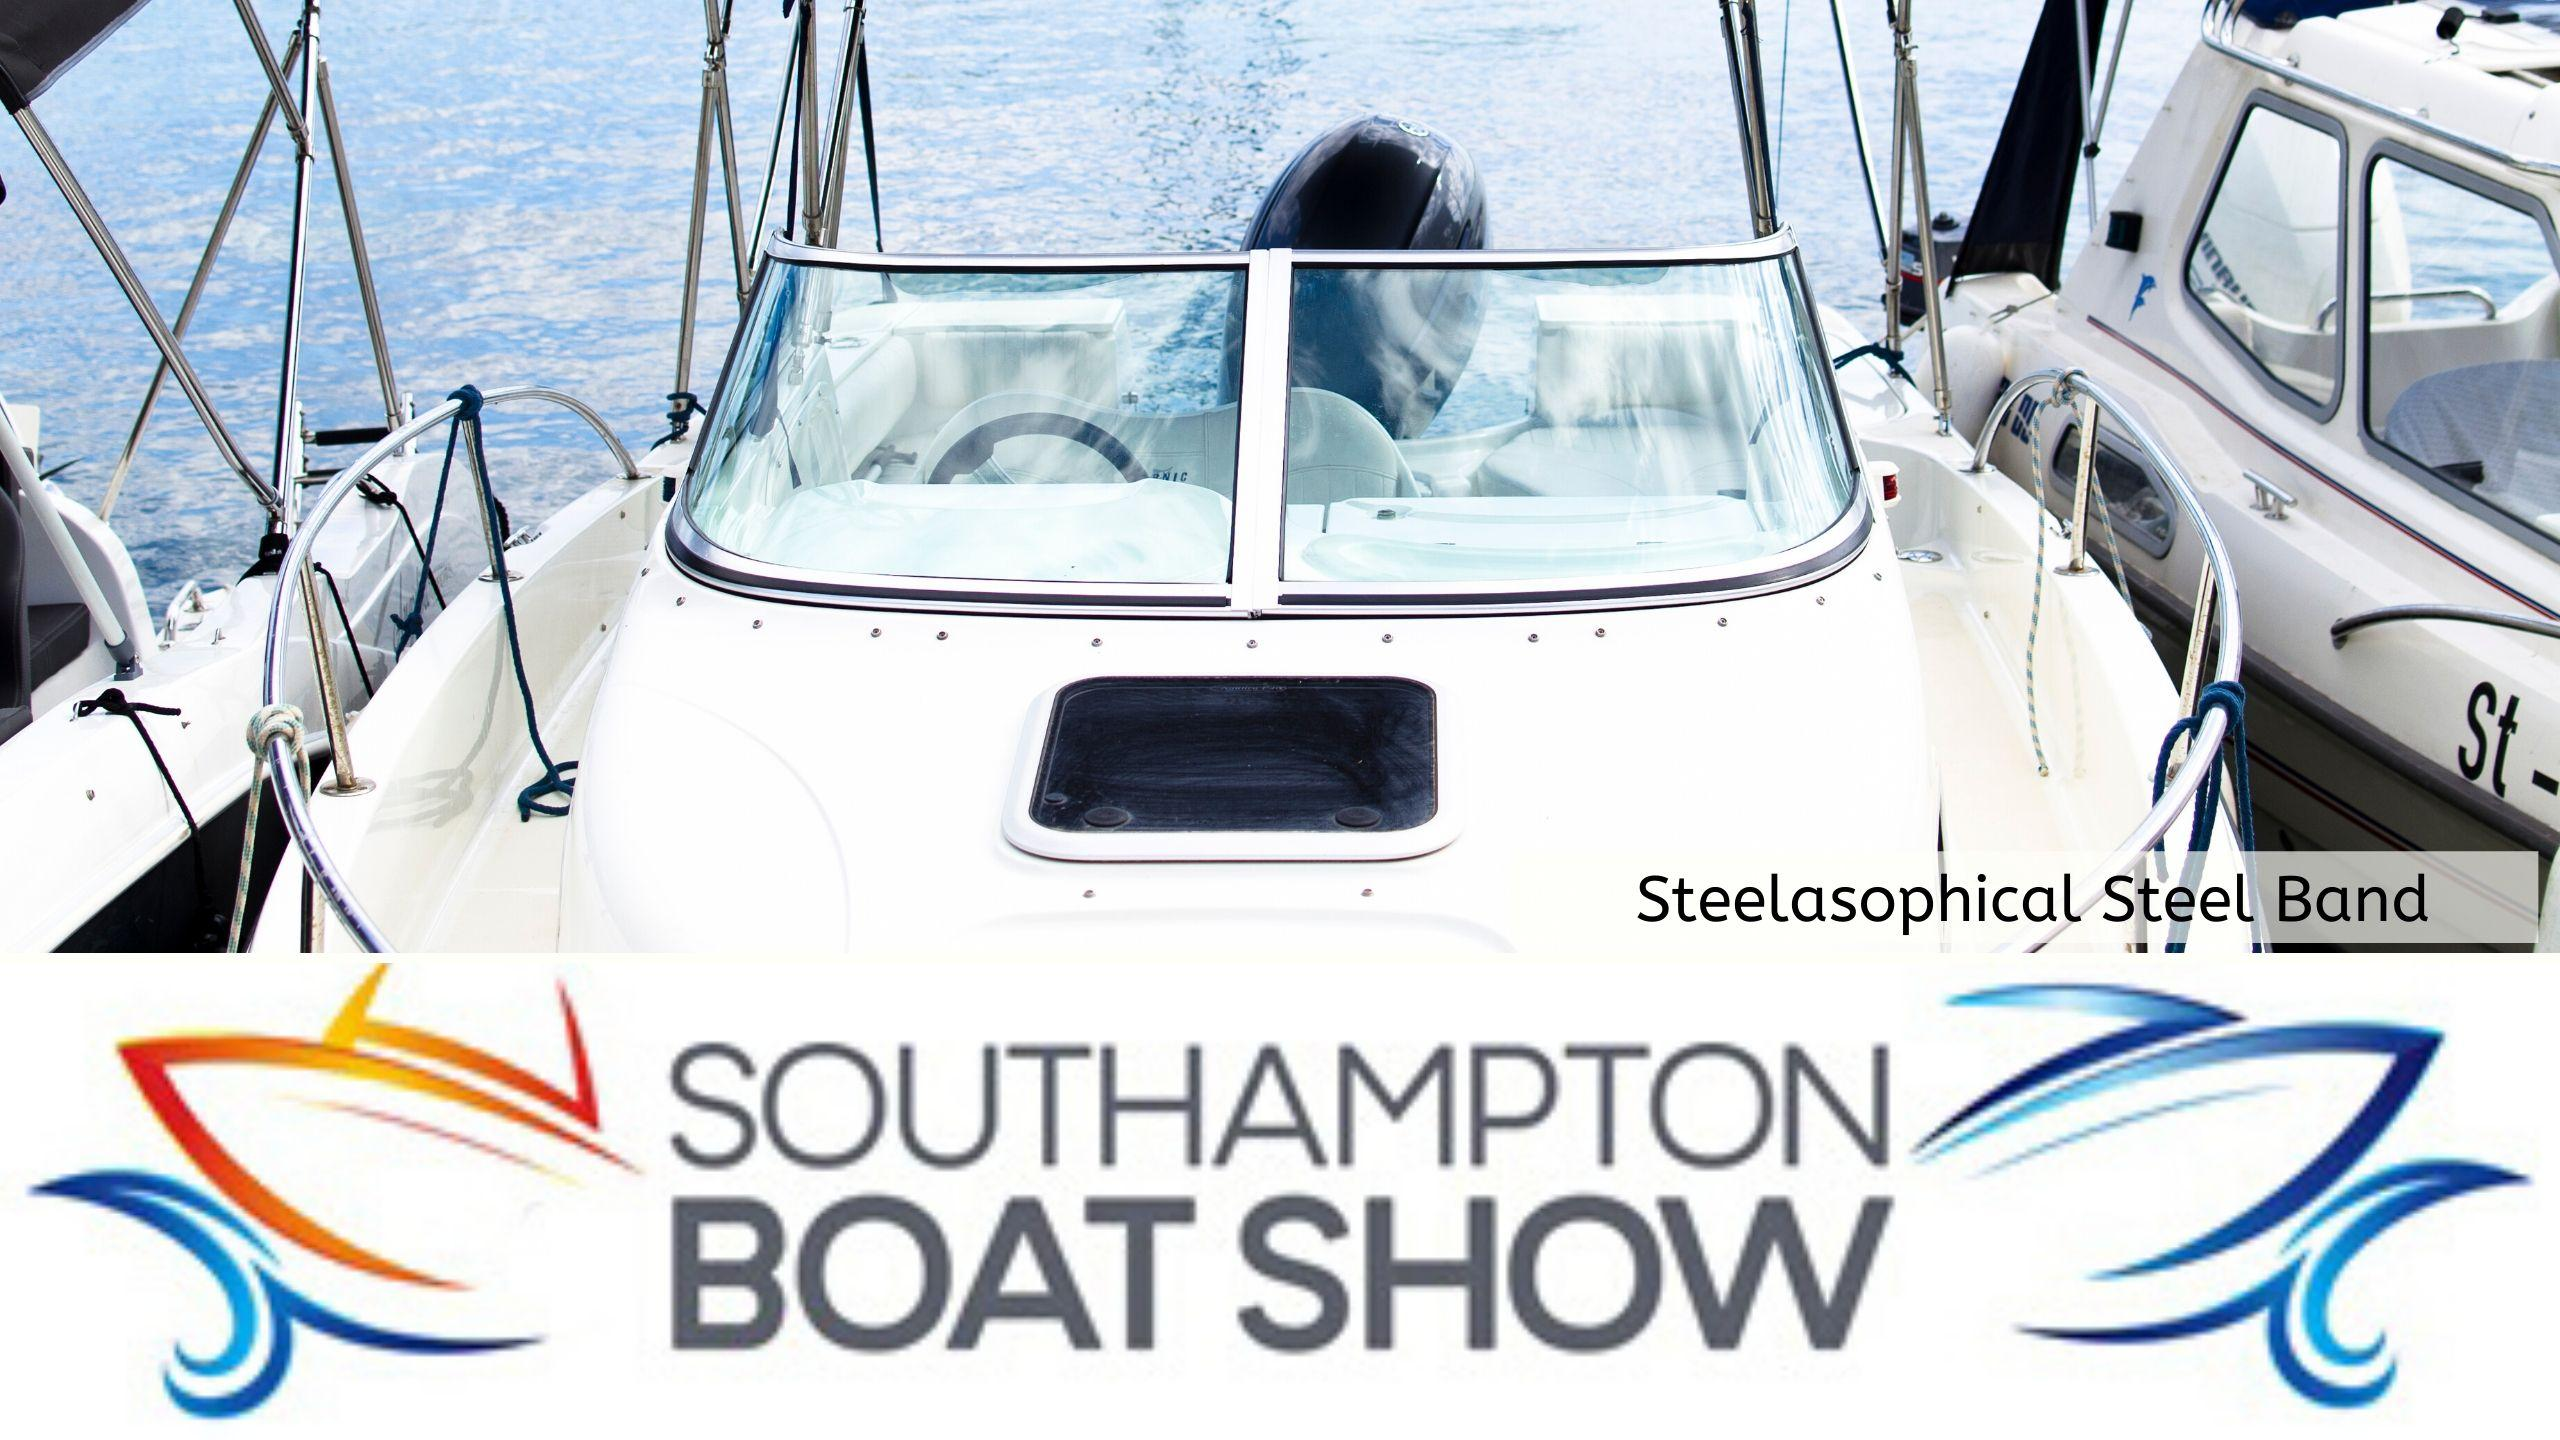 Steelasophical Steel Band Southampton Boat Show Yacht Market photography